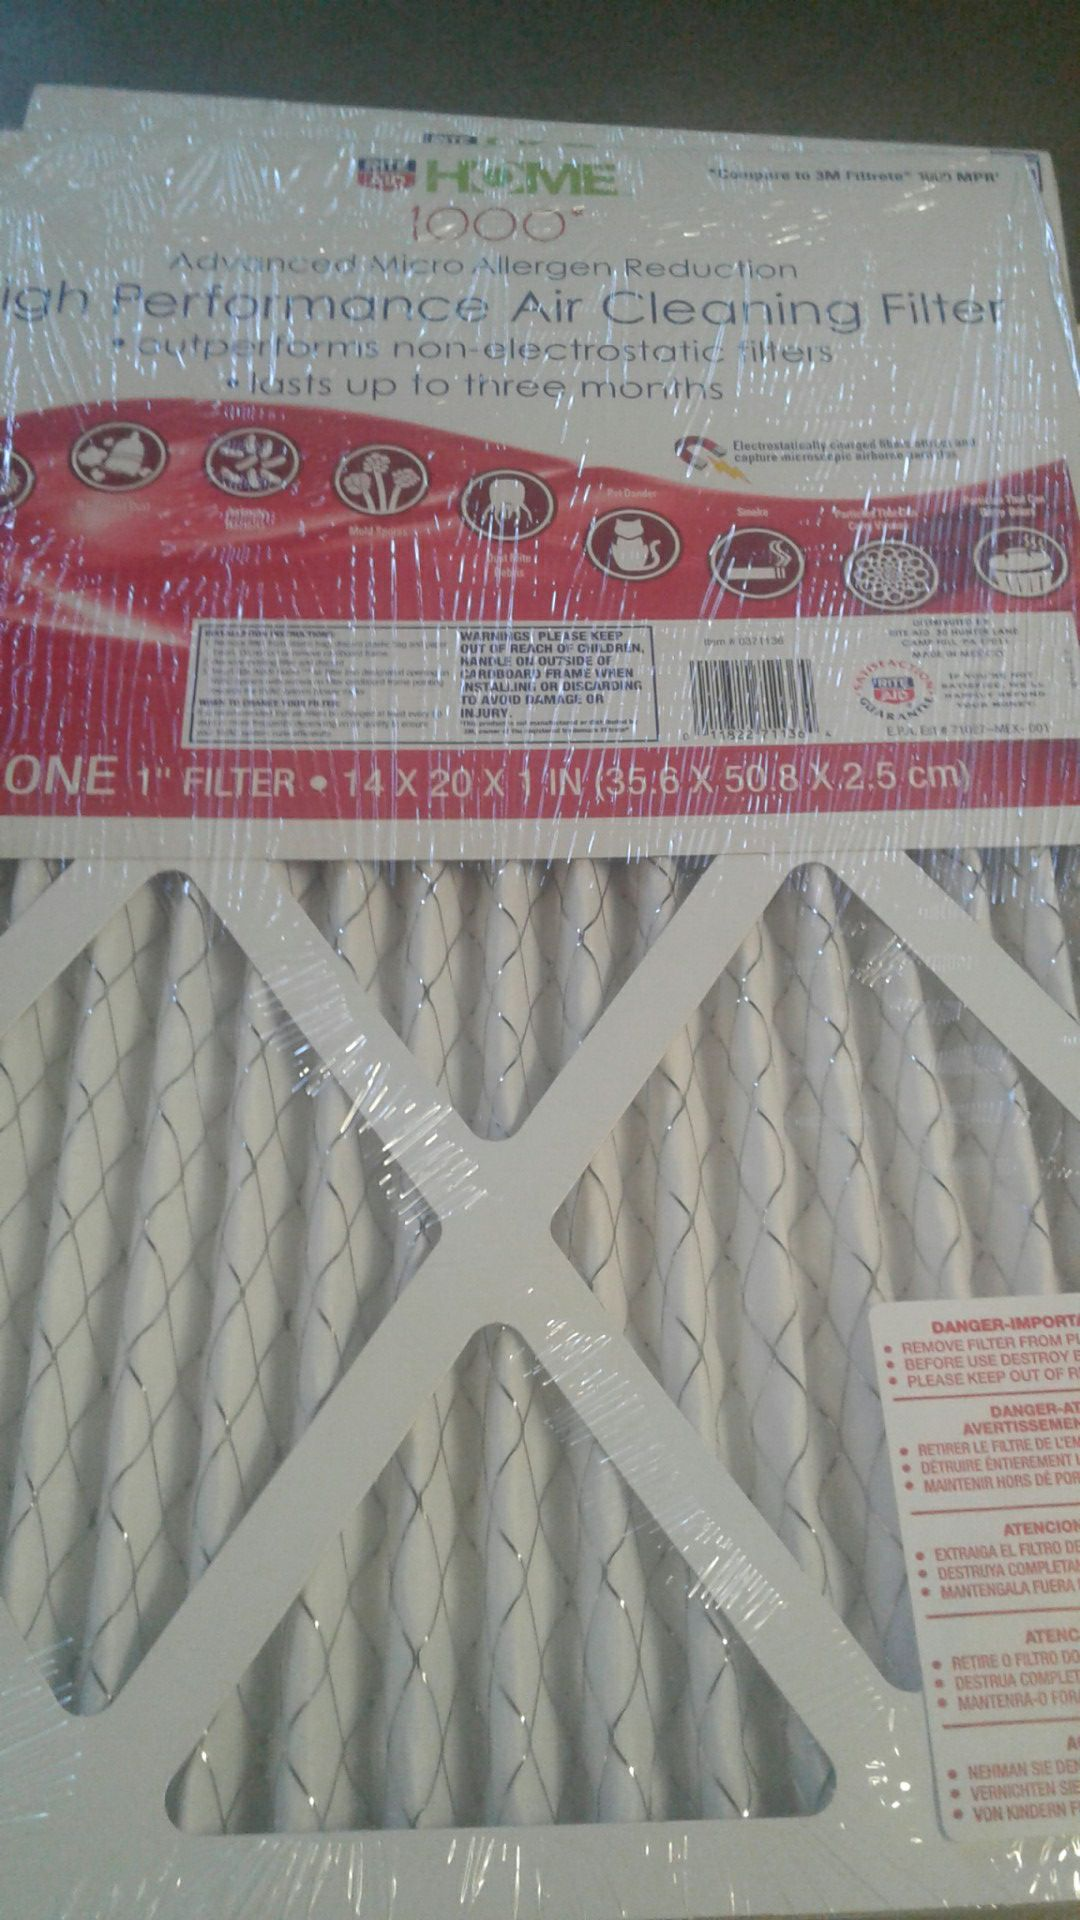 Air cleaning filter/Heather filters